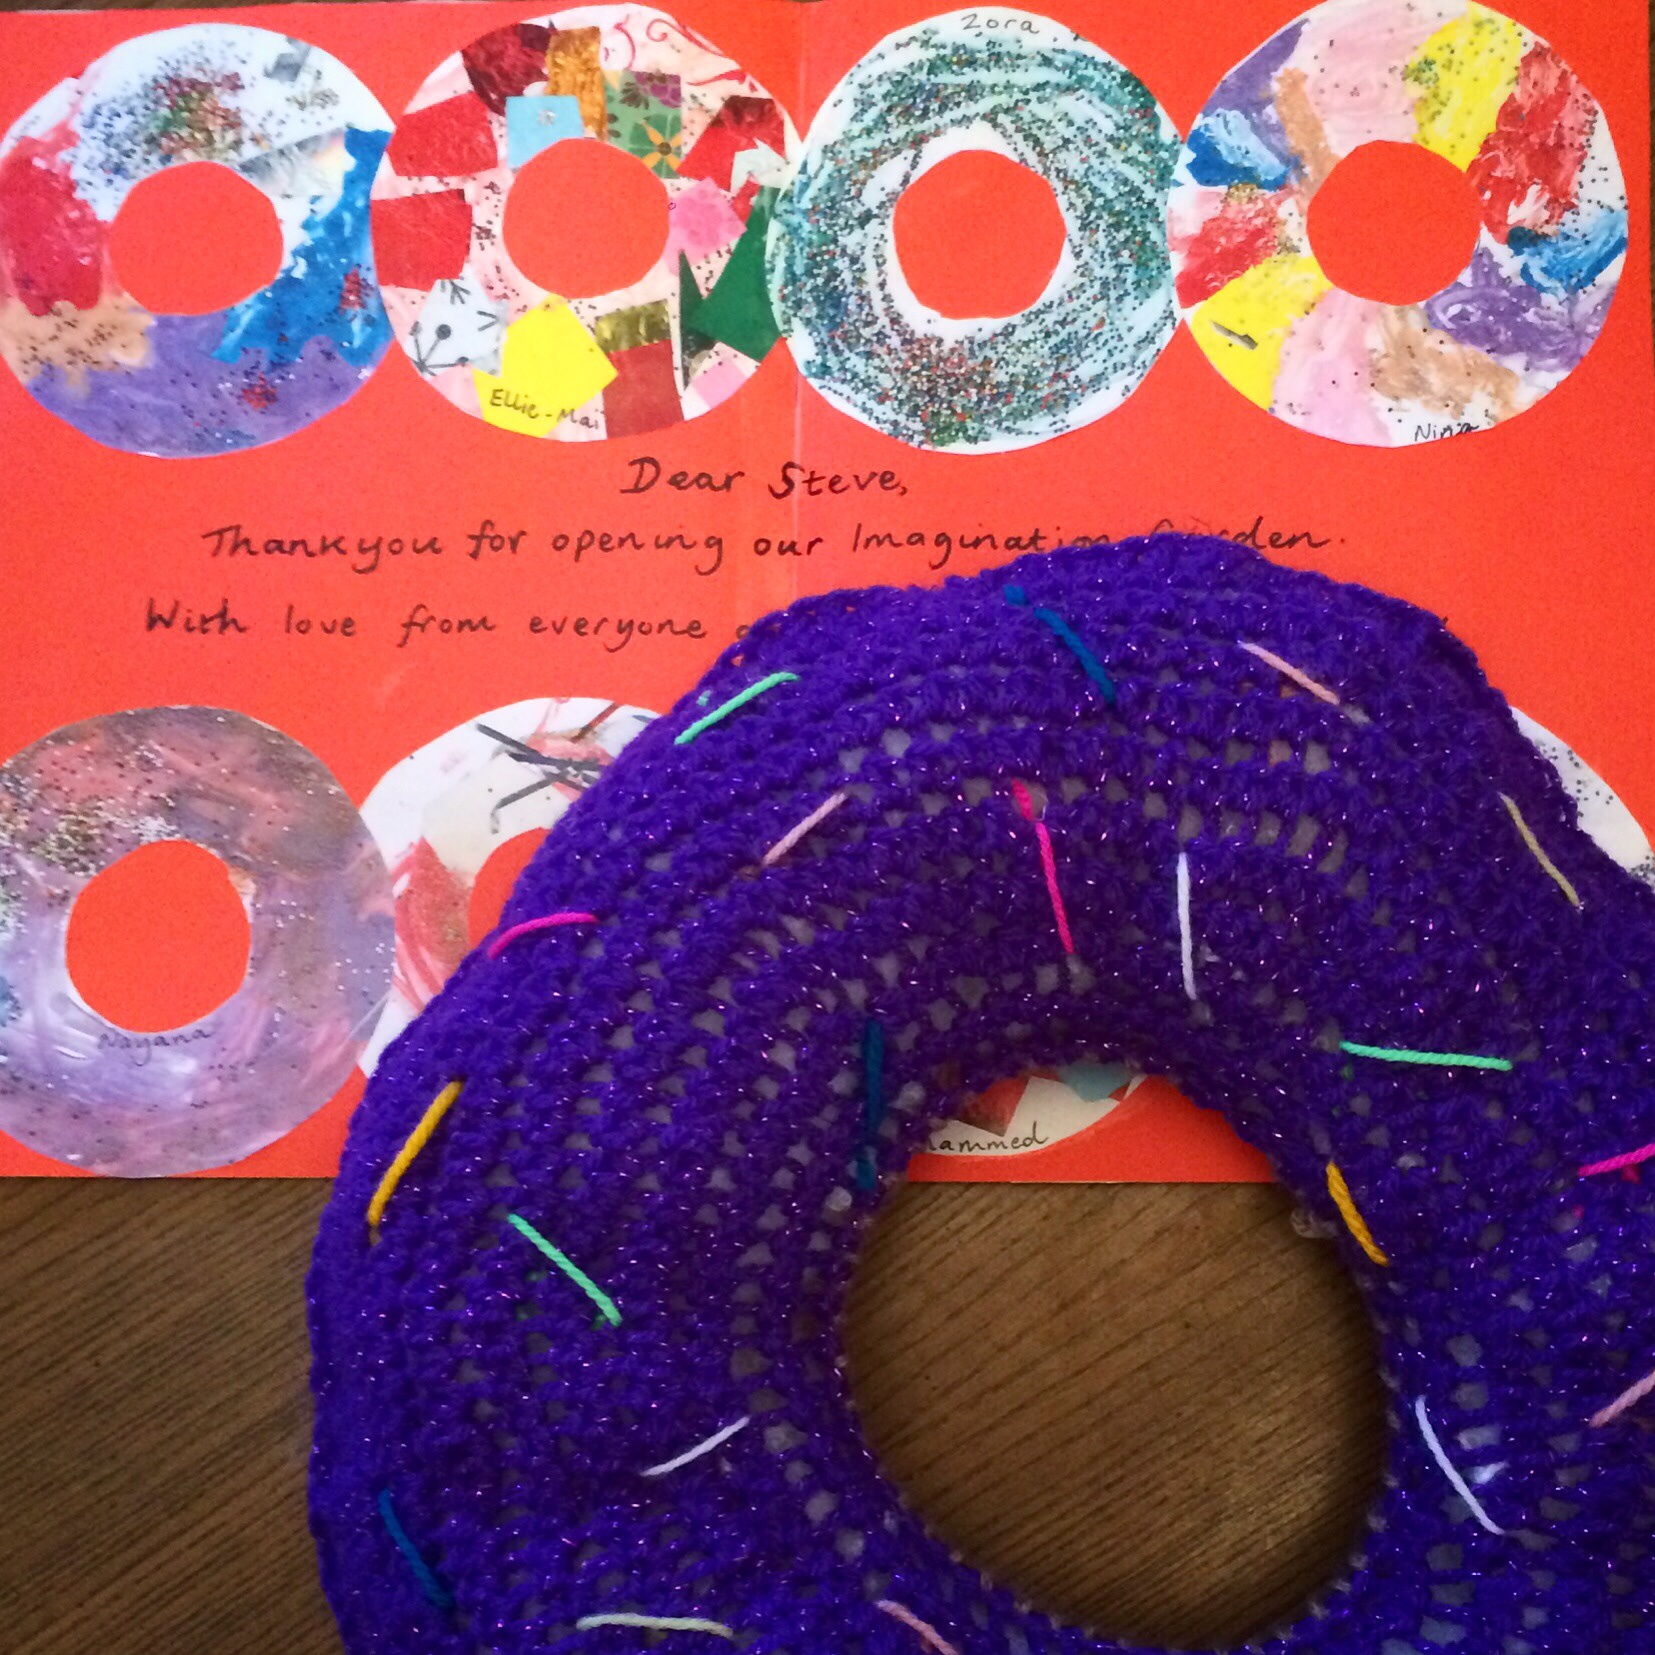 A colourful doughnut card and a giant doughnut: a thank you gift from the school!